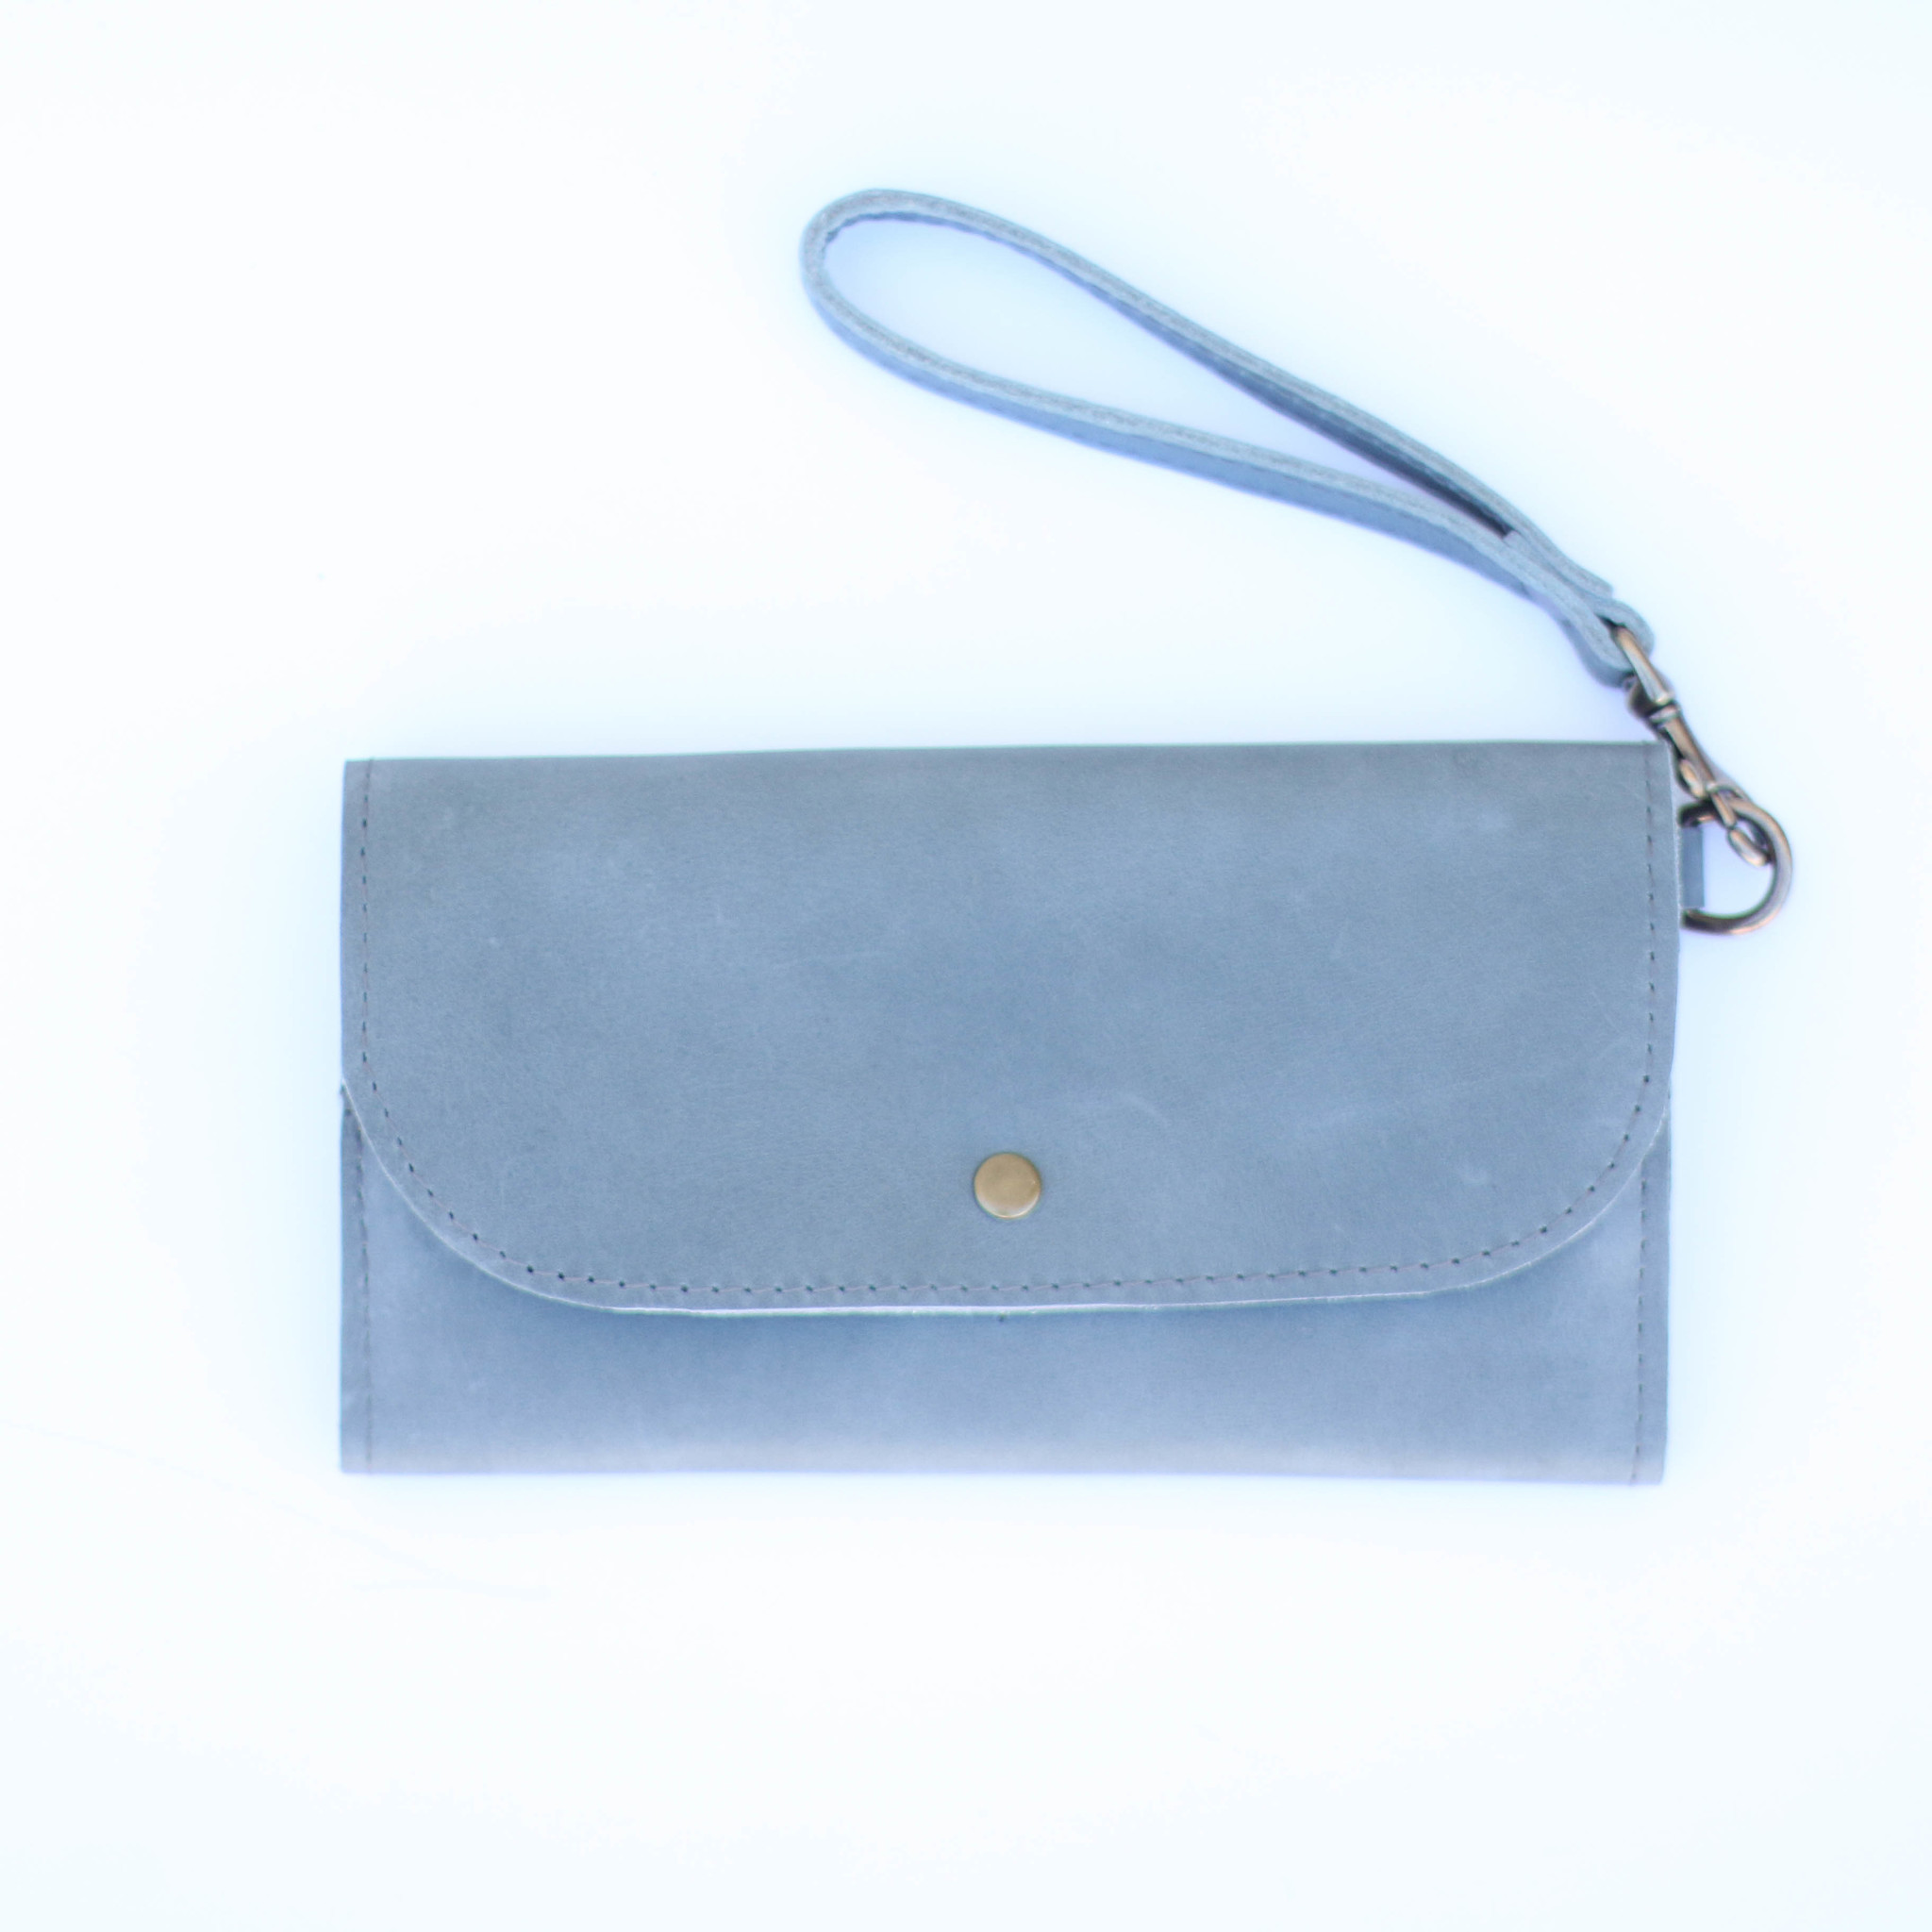 Punchy's Mare Phone Wallet in Denim Blue